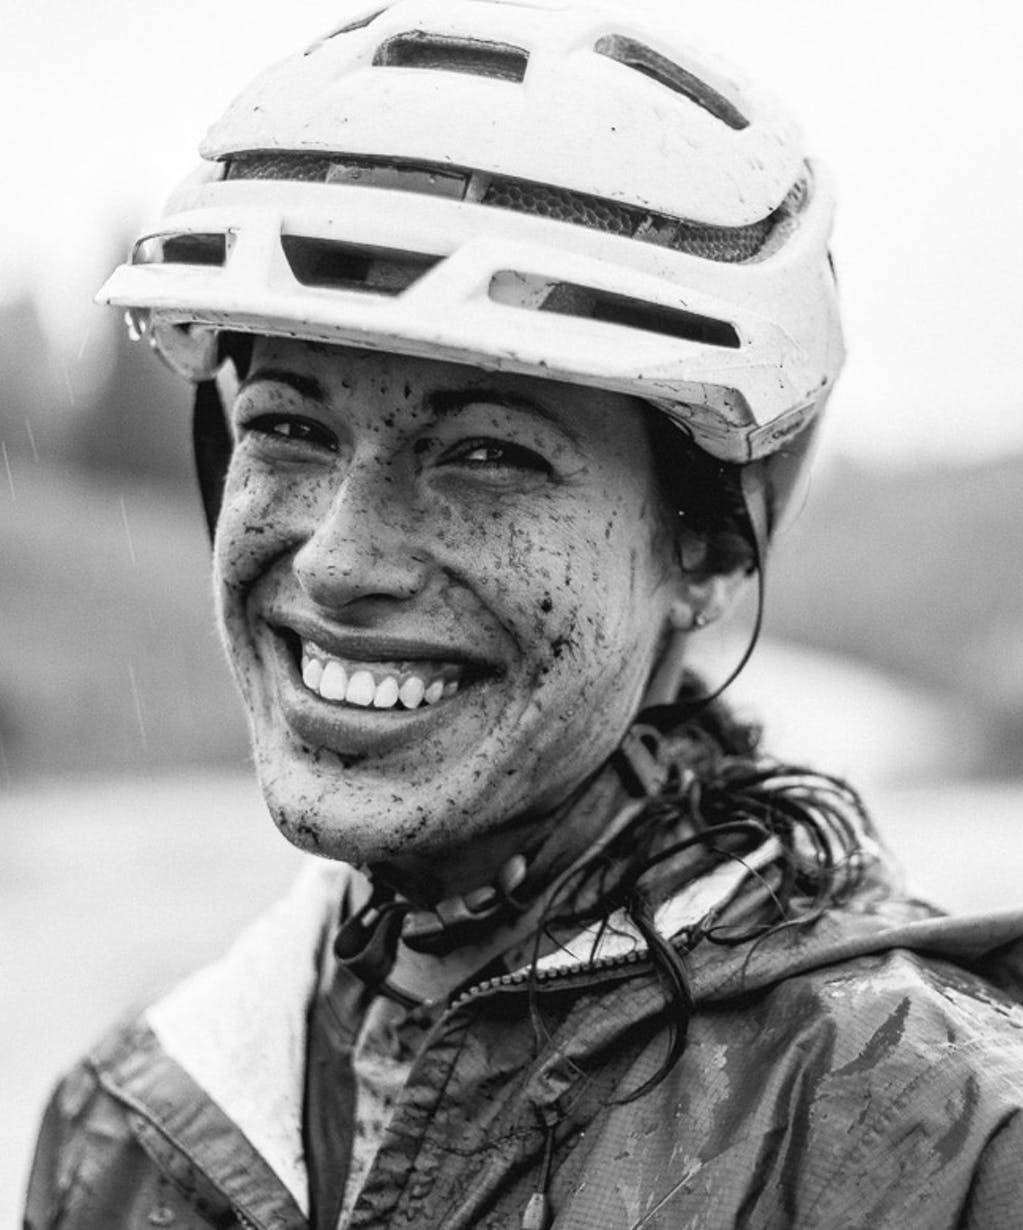 Nichole Baker with a happy mud-splattered face.